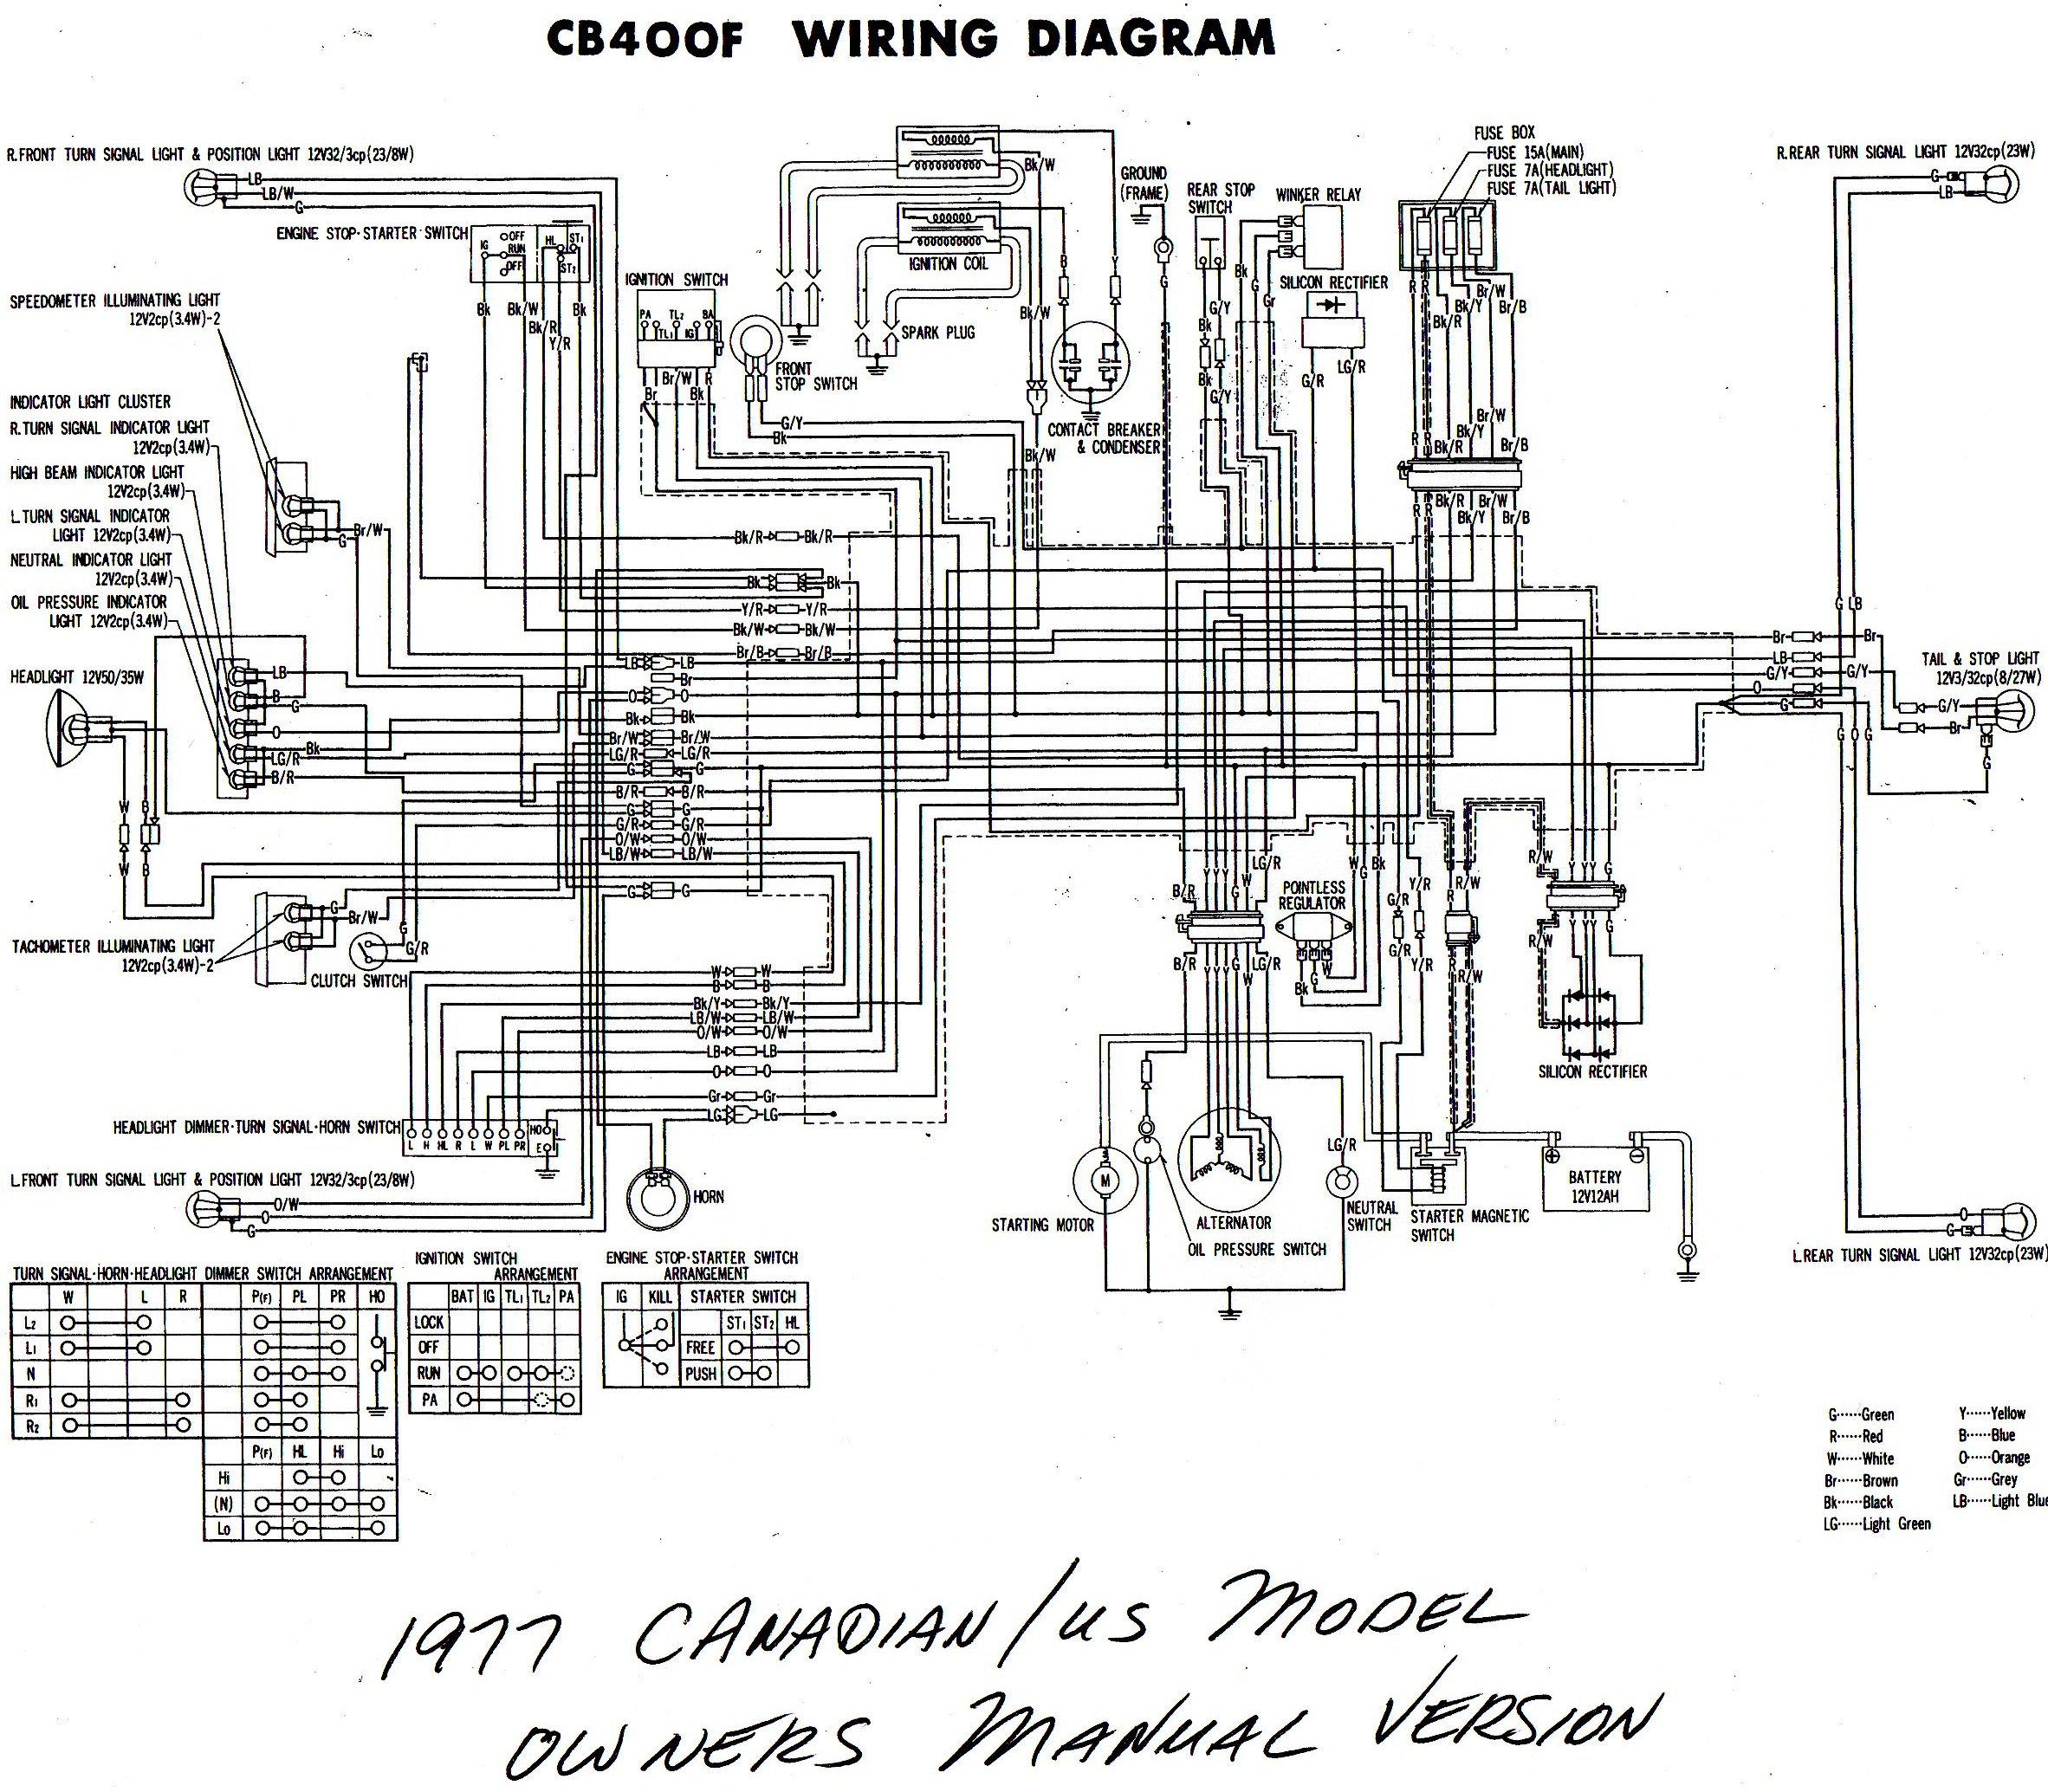 1978 honda cb400 wiring diagram 2003 civic si radio 1993 four owner manua 2019 ebook library